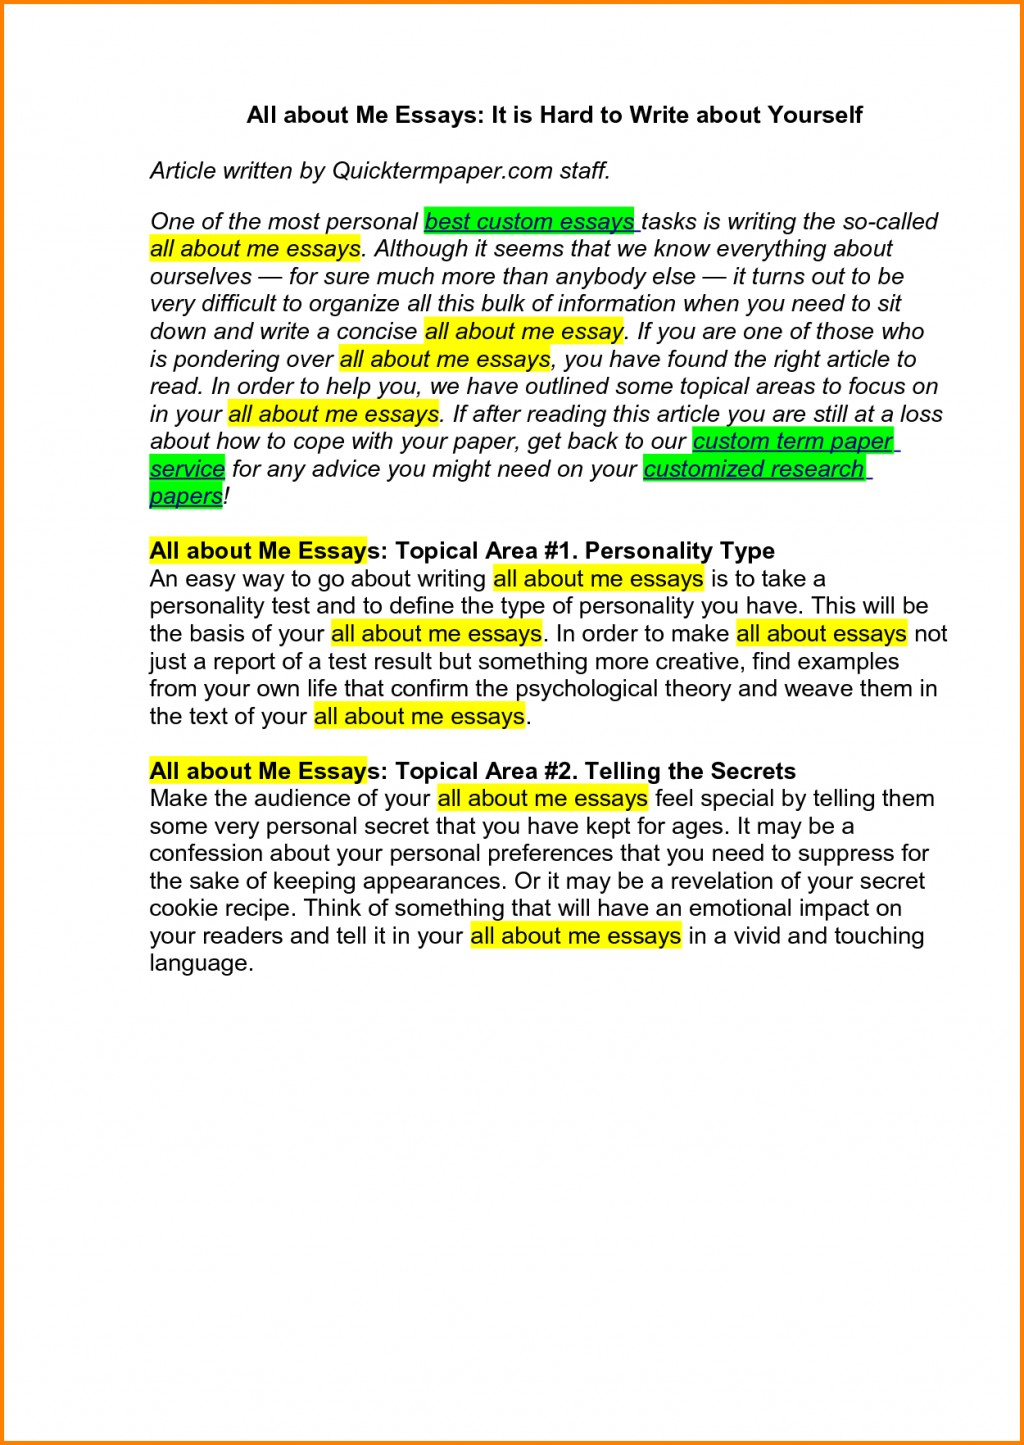 011 How Start Essay About Yourself Metaphor Introduction Informative Write Tell An Example Pdf Sample Reflective In Spanish Tumblr Mba Scholarship Narrative Talk Ideas Staggering To For A Application Large